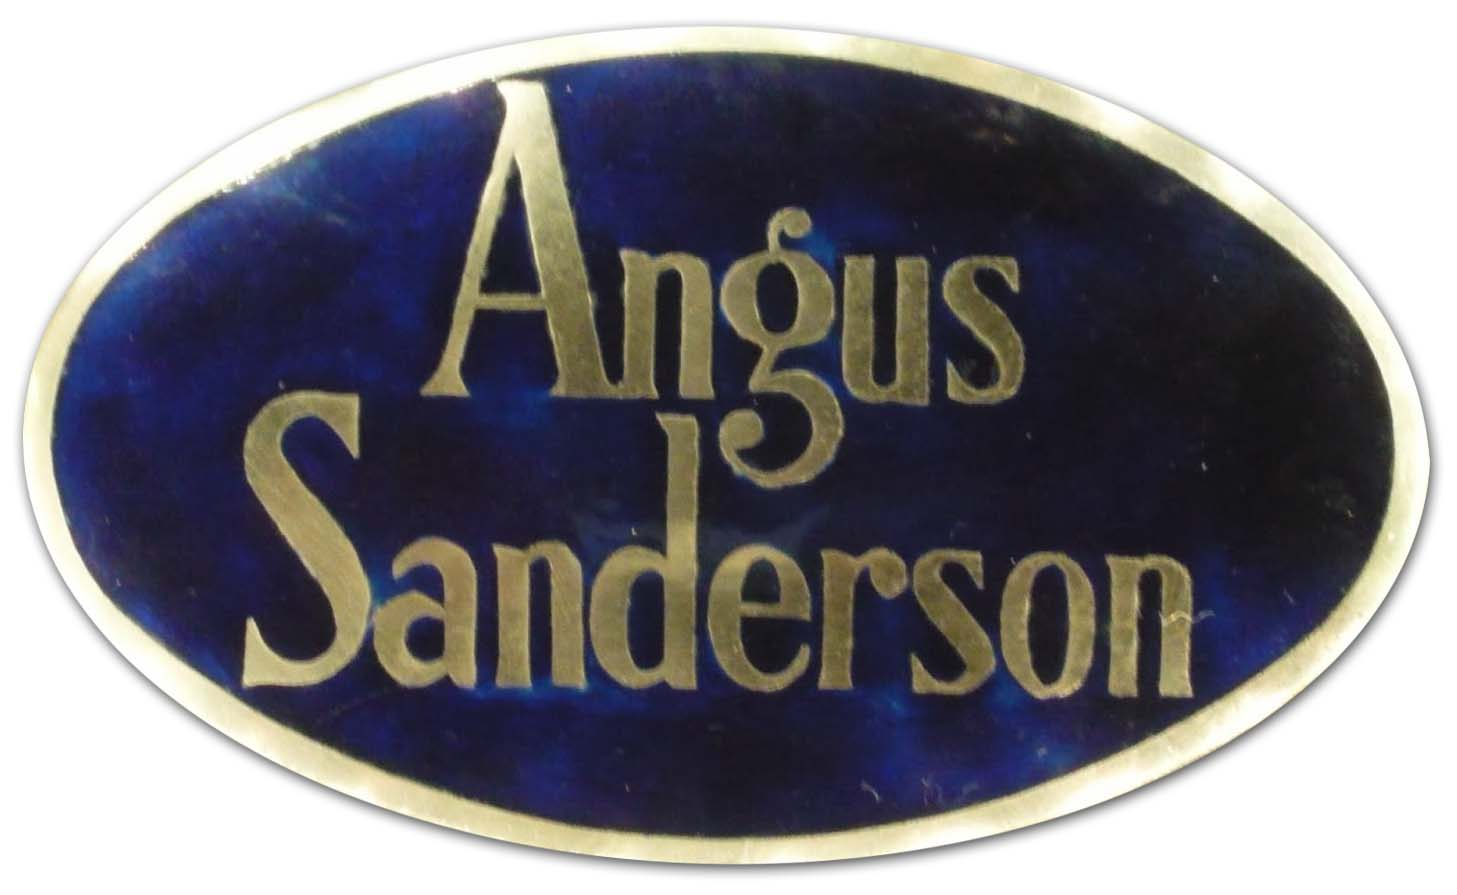 Angus Sanderson (Sir William Angus, Sanderson and Company Ltd.) (1927)